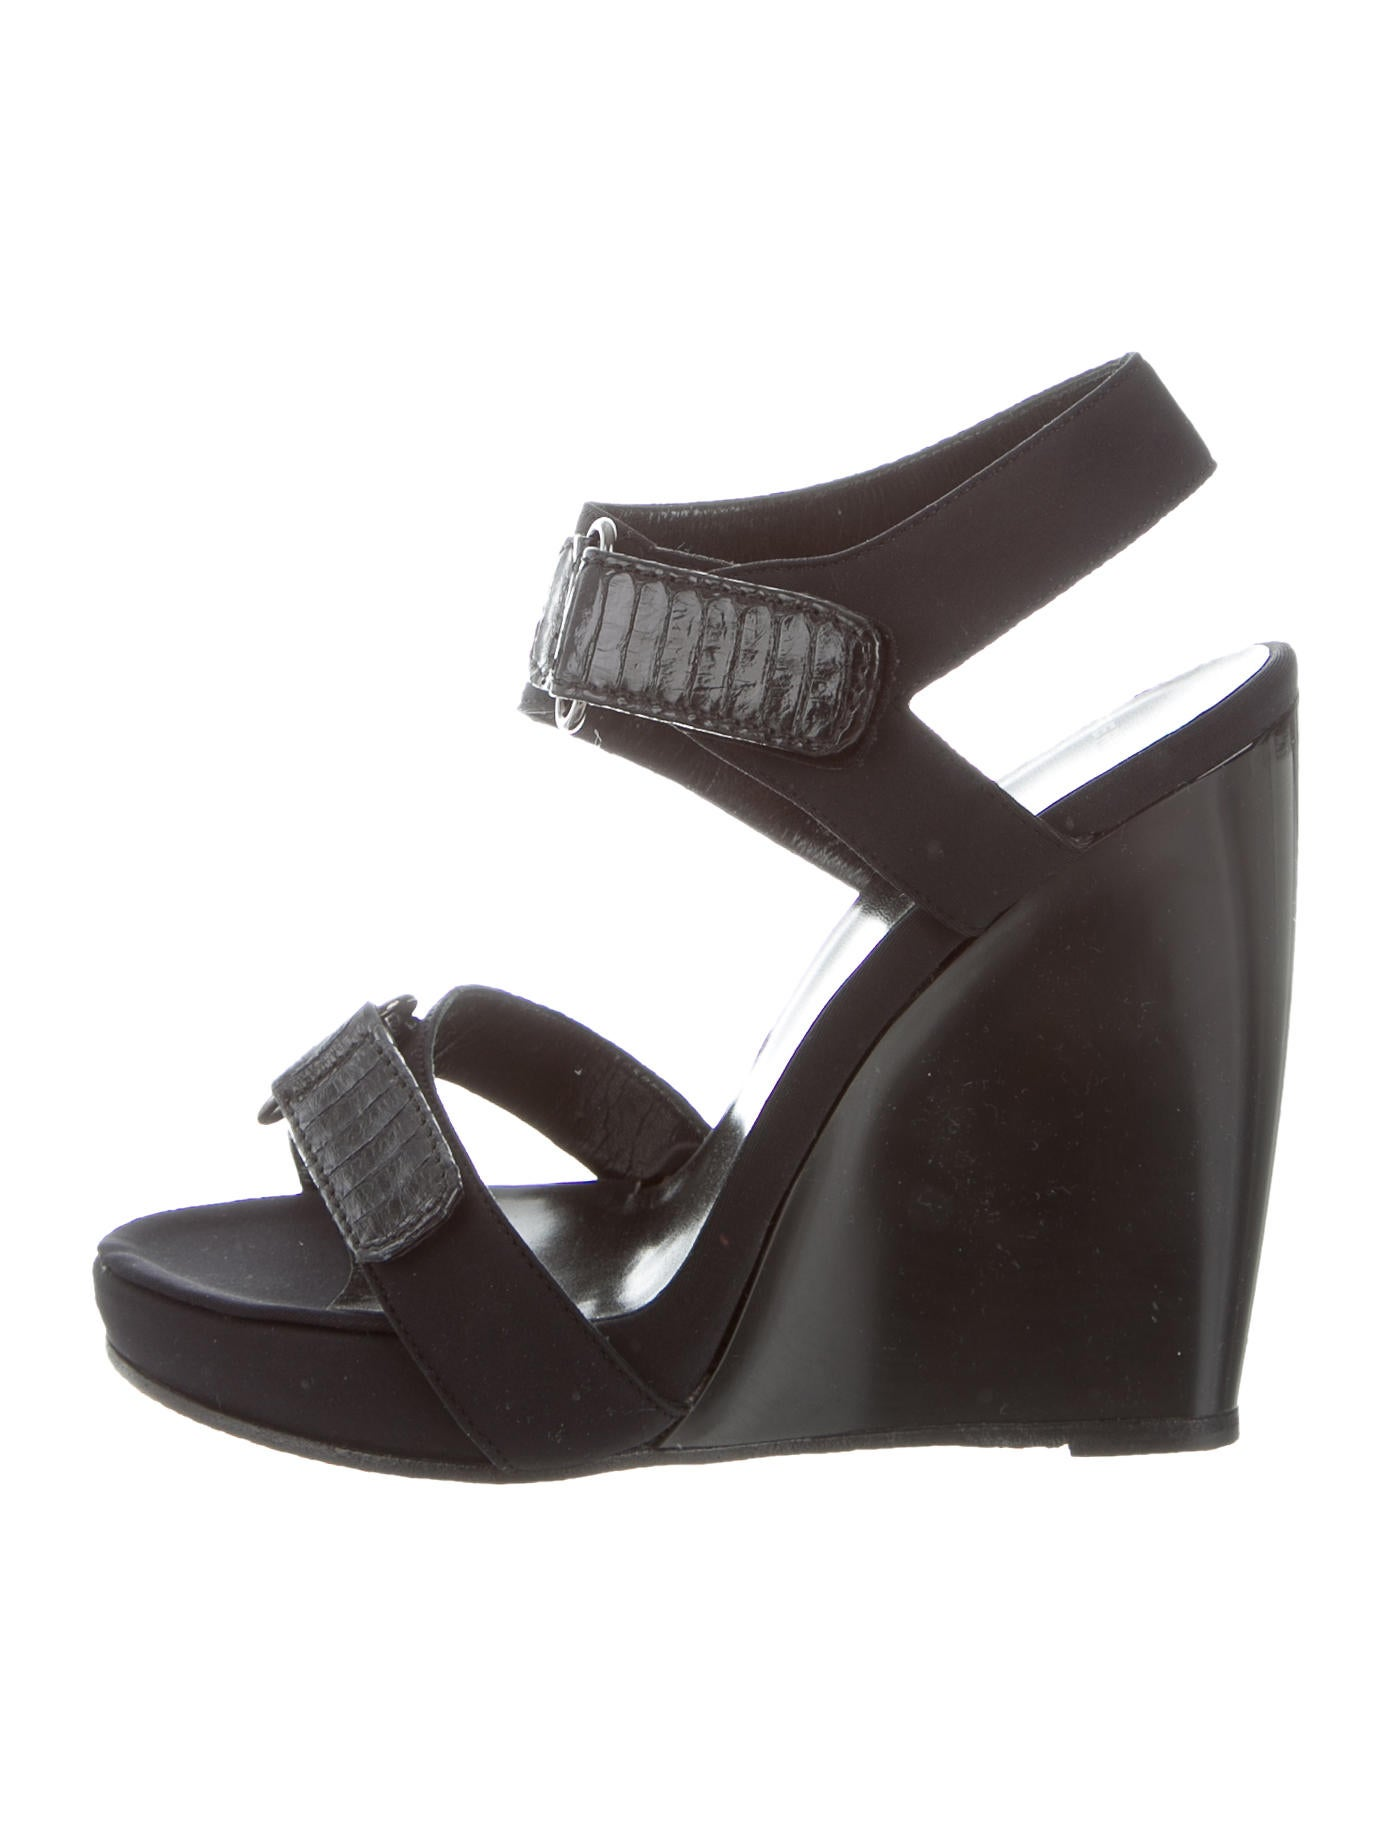 Pierre Hardy Ankle-Strap Wedge Sandals - Shoes - PIE24583 ...